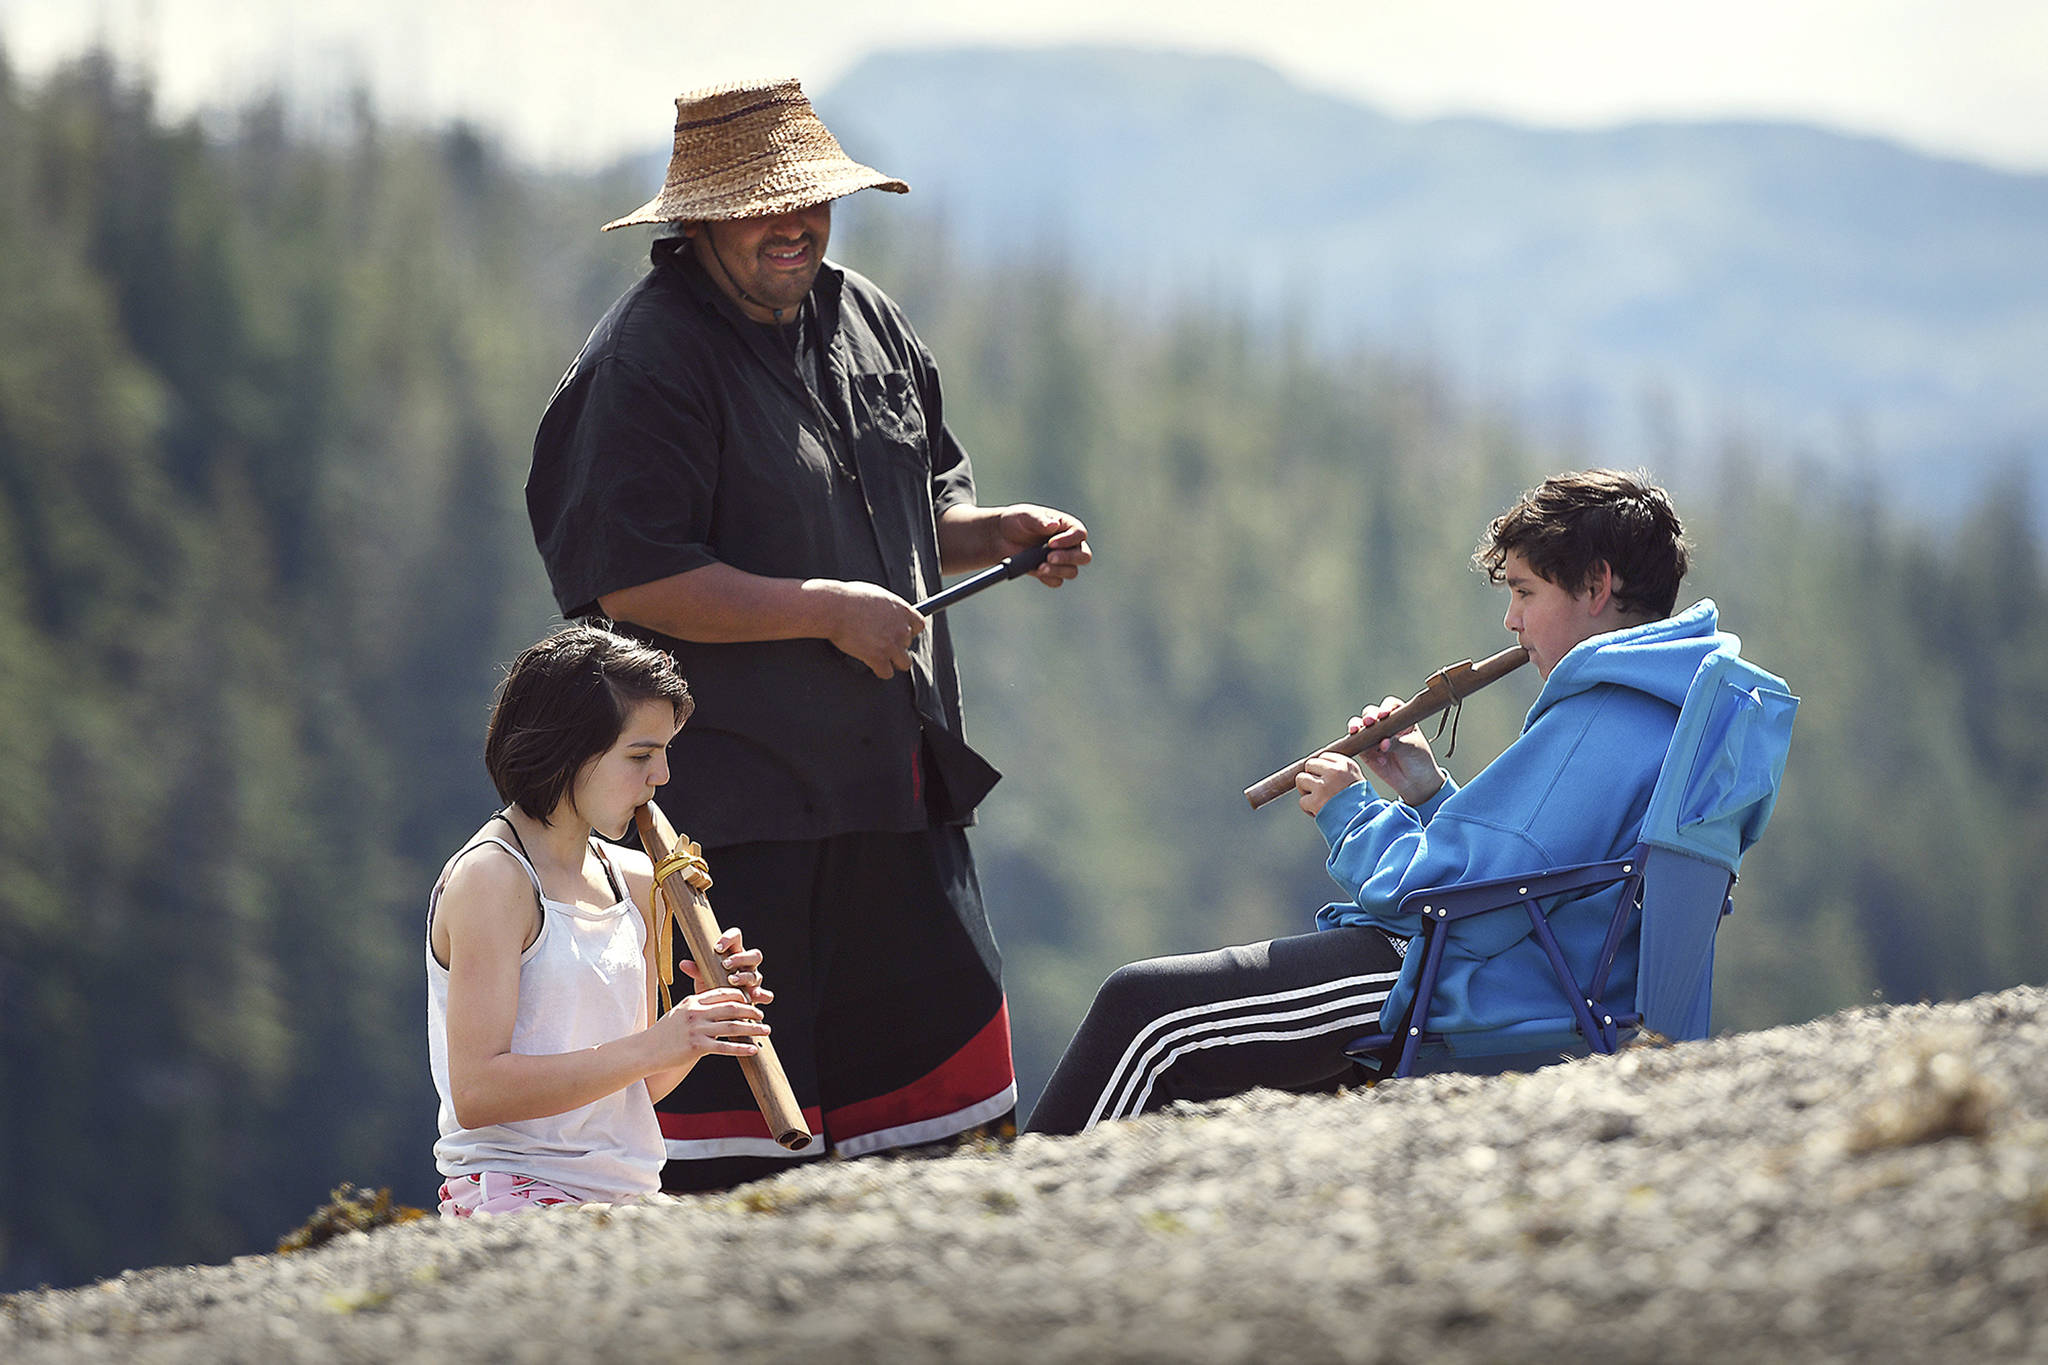 In this photo taken June 20, 2019, Sophie Lynda Agoney, 13, and Alexander Orion Shull, 12, both of Ketchikan, learn how to play the native flute from mentor Johon Atkinson during Culture Camp on Hemlock Island near Metlakatla, Alaska. This year was the first time the Ketchikan Indian Community and Nüüm Na Waalt culture camps joined together for the event and a seven-night campout on the island. (Dustin Safranek/Ketchikan Daily News via AP)